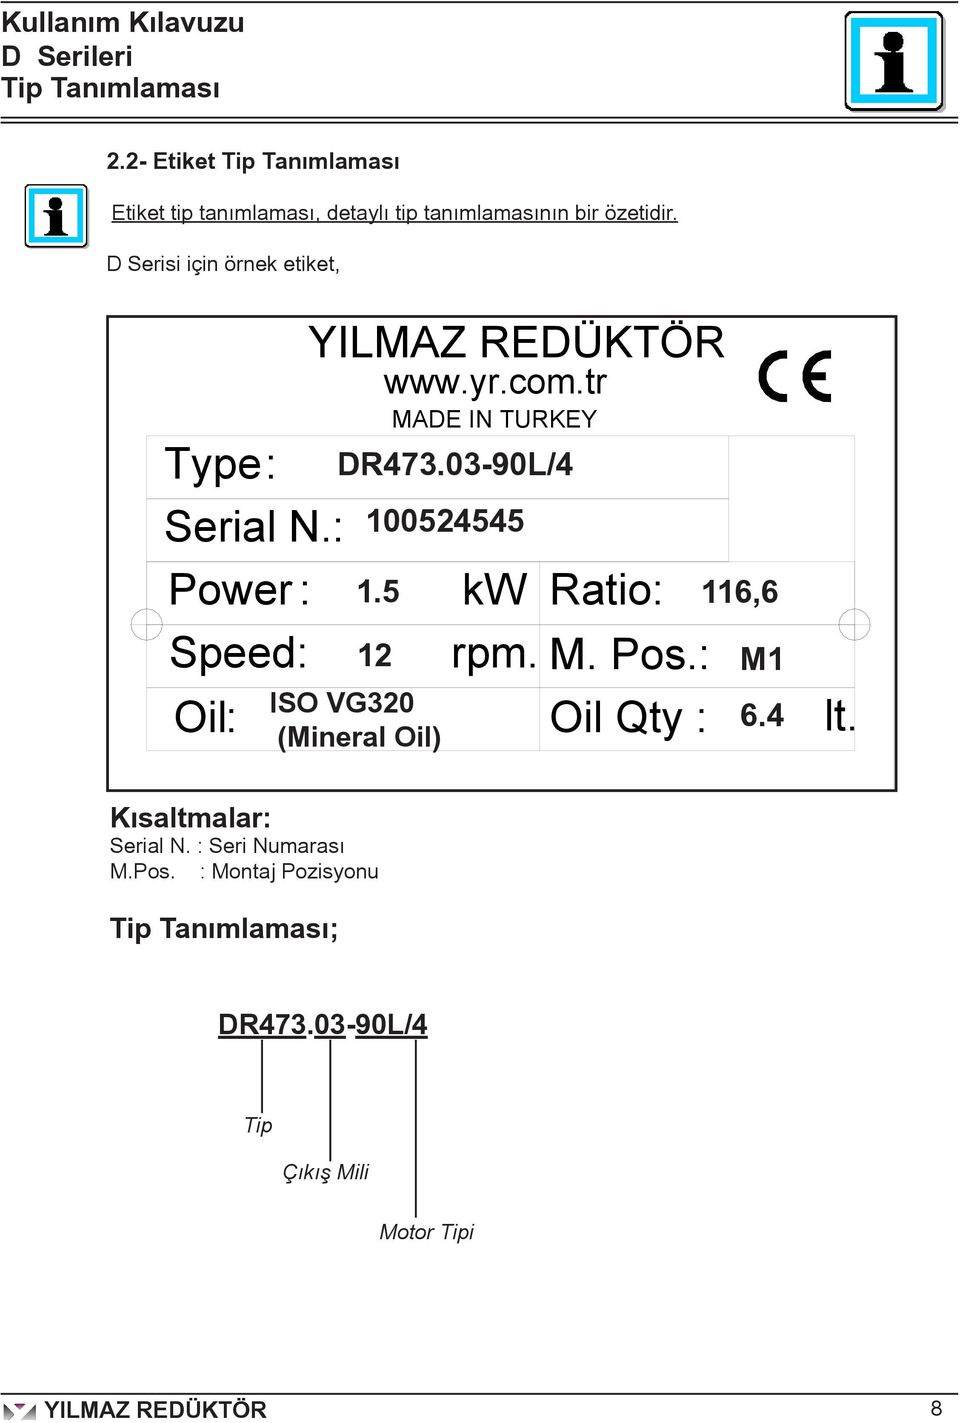 0-90L/4 100524545 kw rpm. Ratio: 1.5 116,6 M. Pos.: 12 M1 ISO VG20 (Mineral Oil) Oil Qty : 6.4 lt.